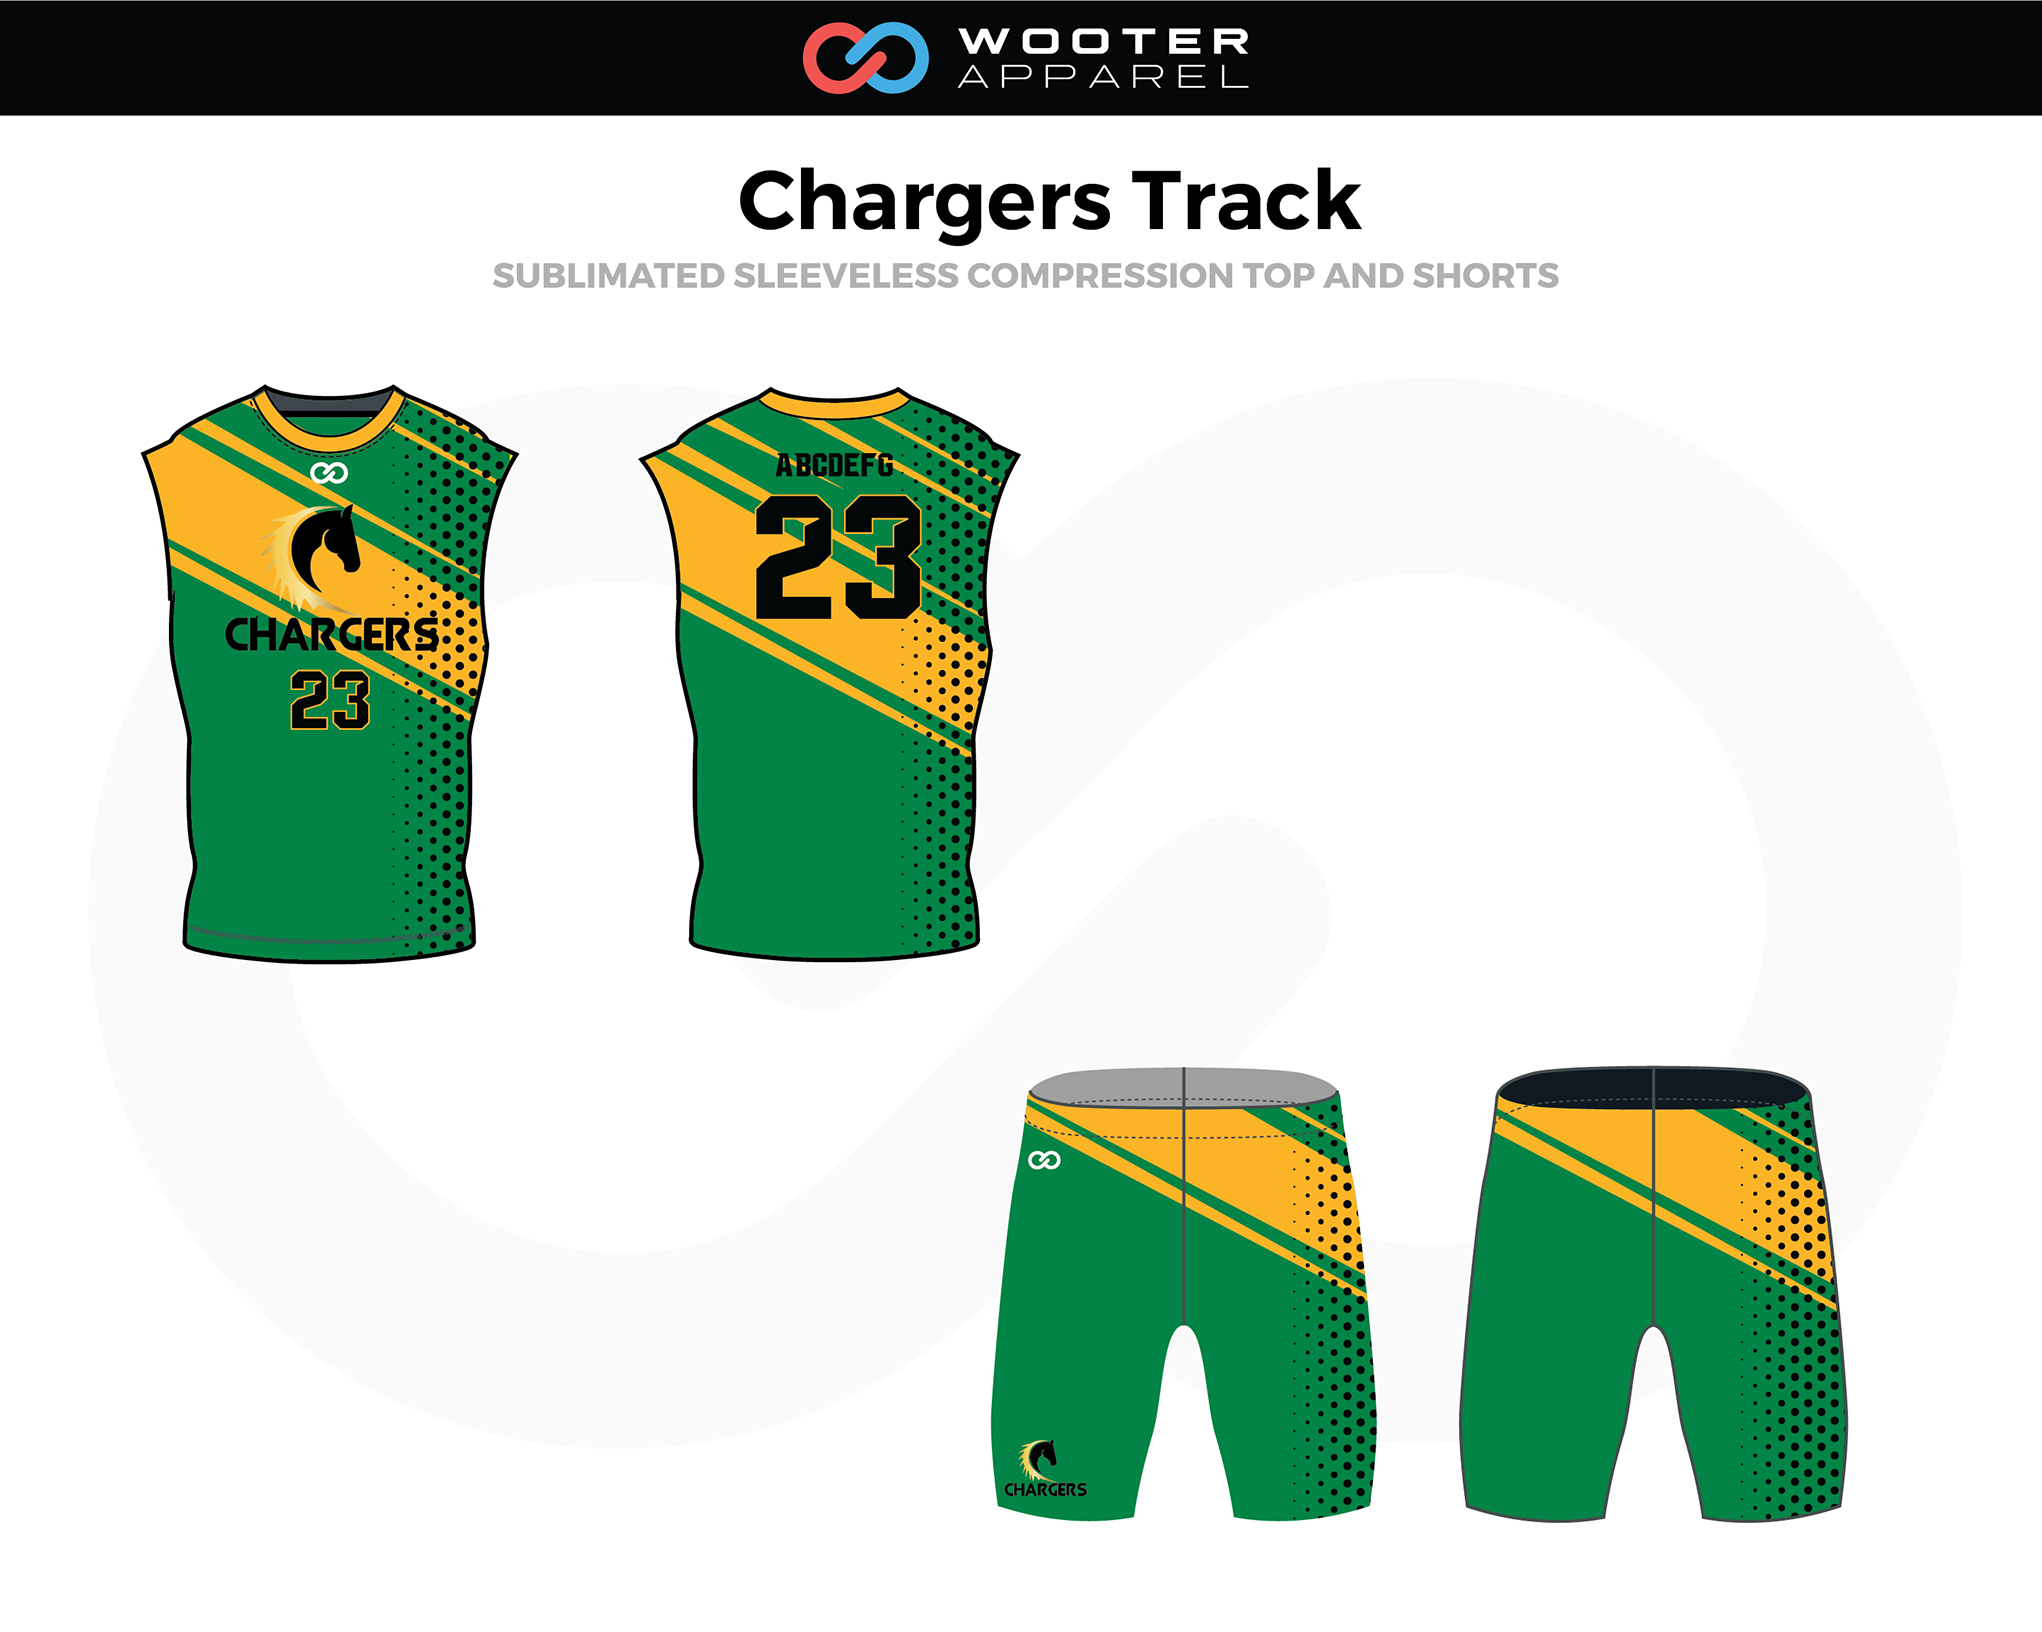 CHARGERS Green Yellow Black Sleeveless Compression Track Uniforms, Jerseys, and Shorts